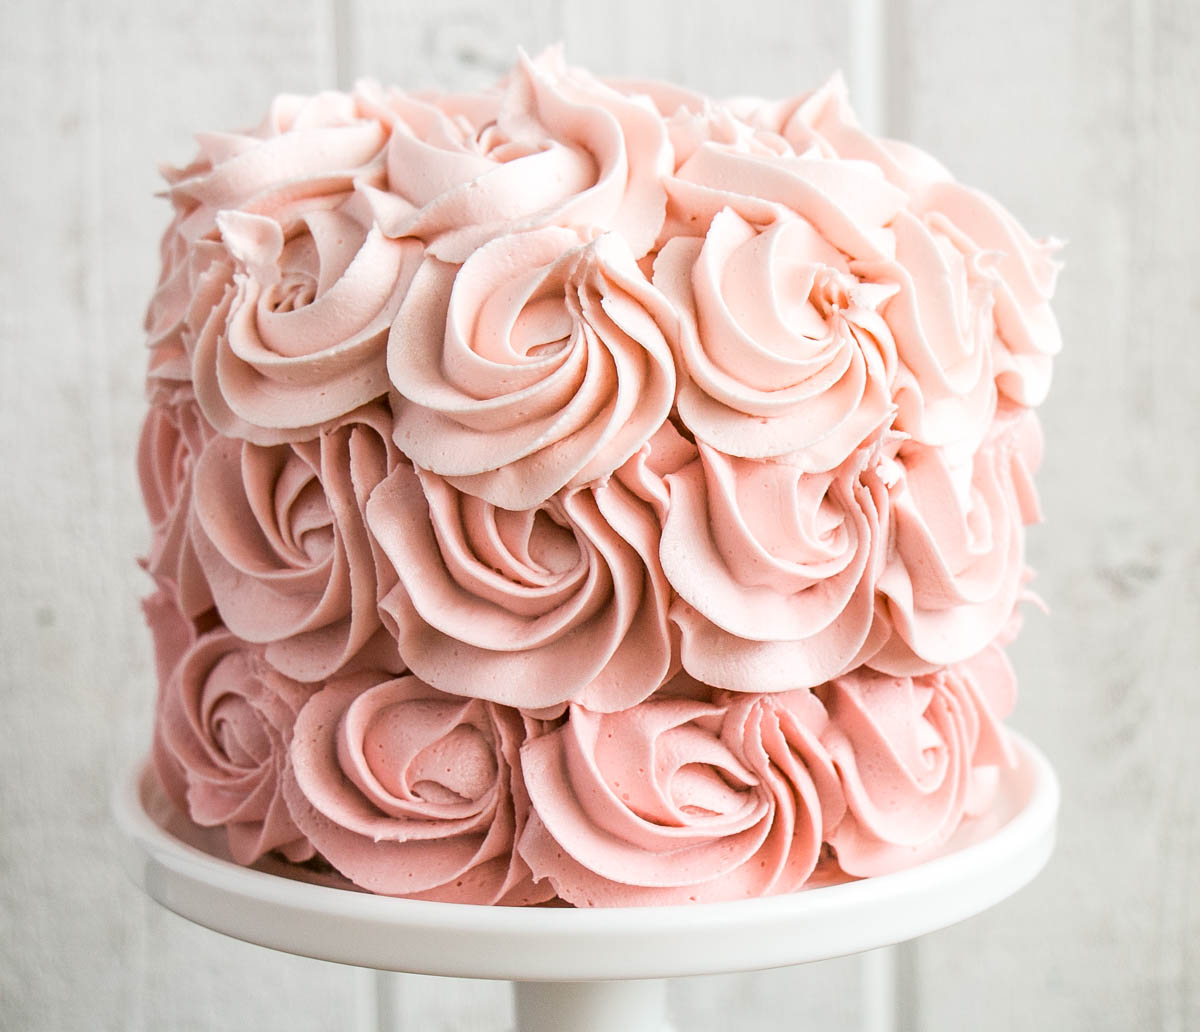 Tips On How To Make An Ombré Rosette Cake Easily